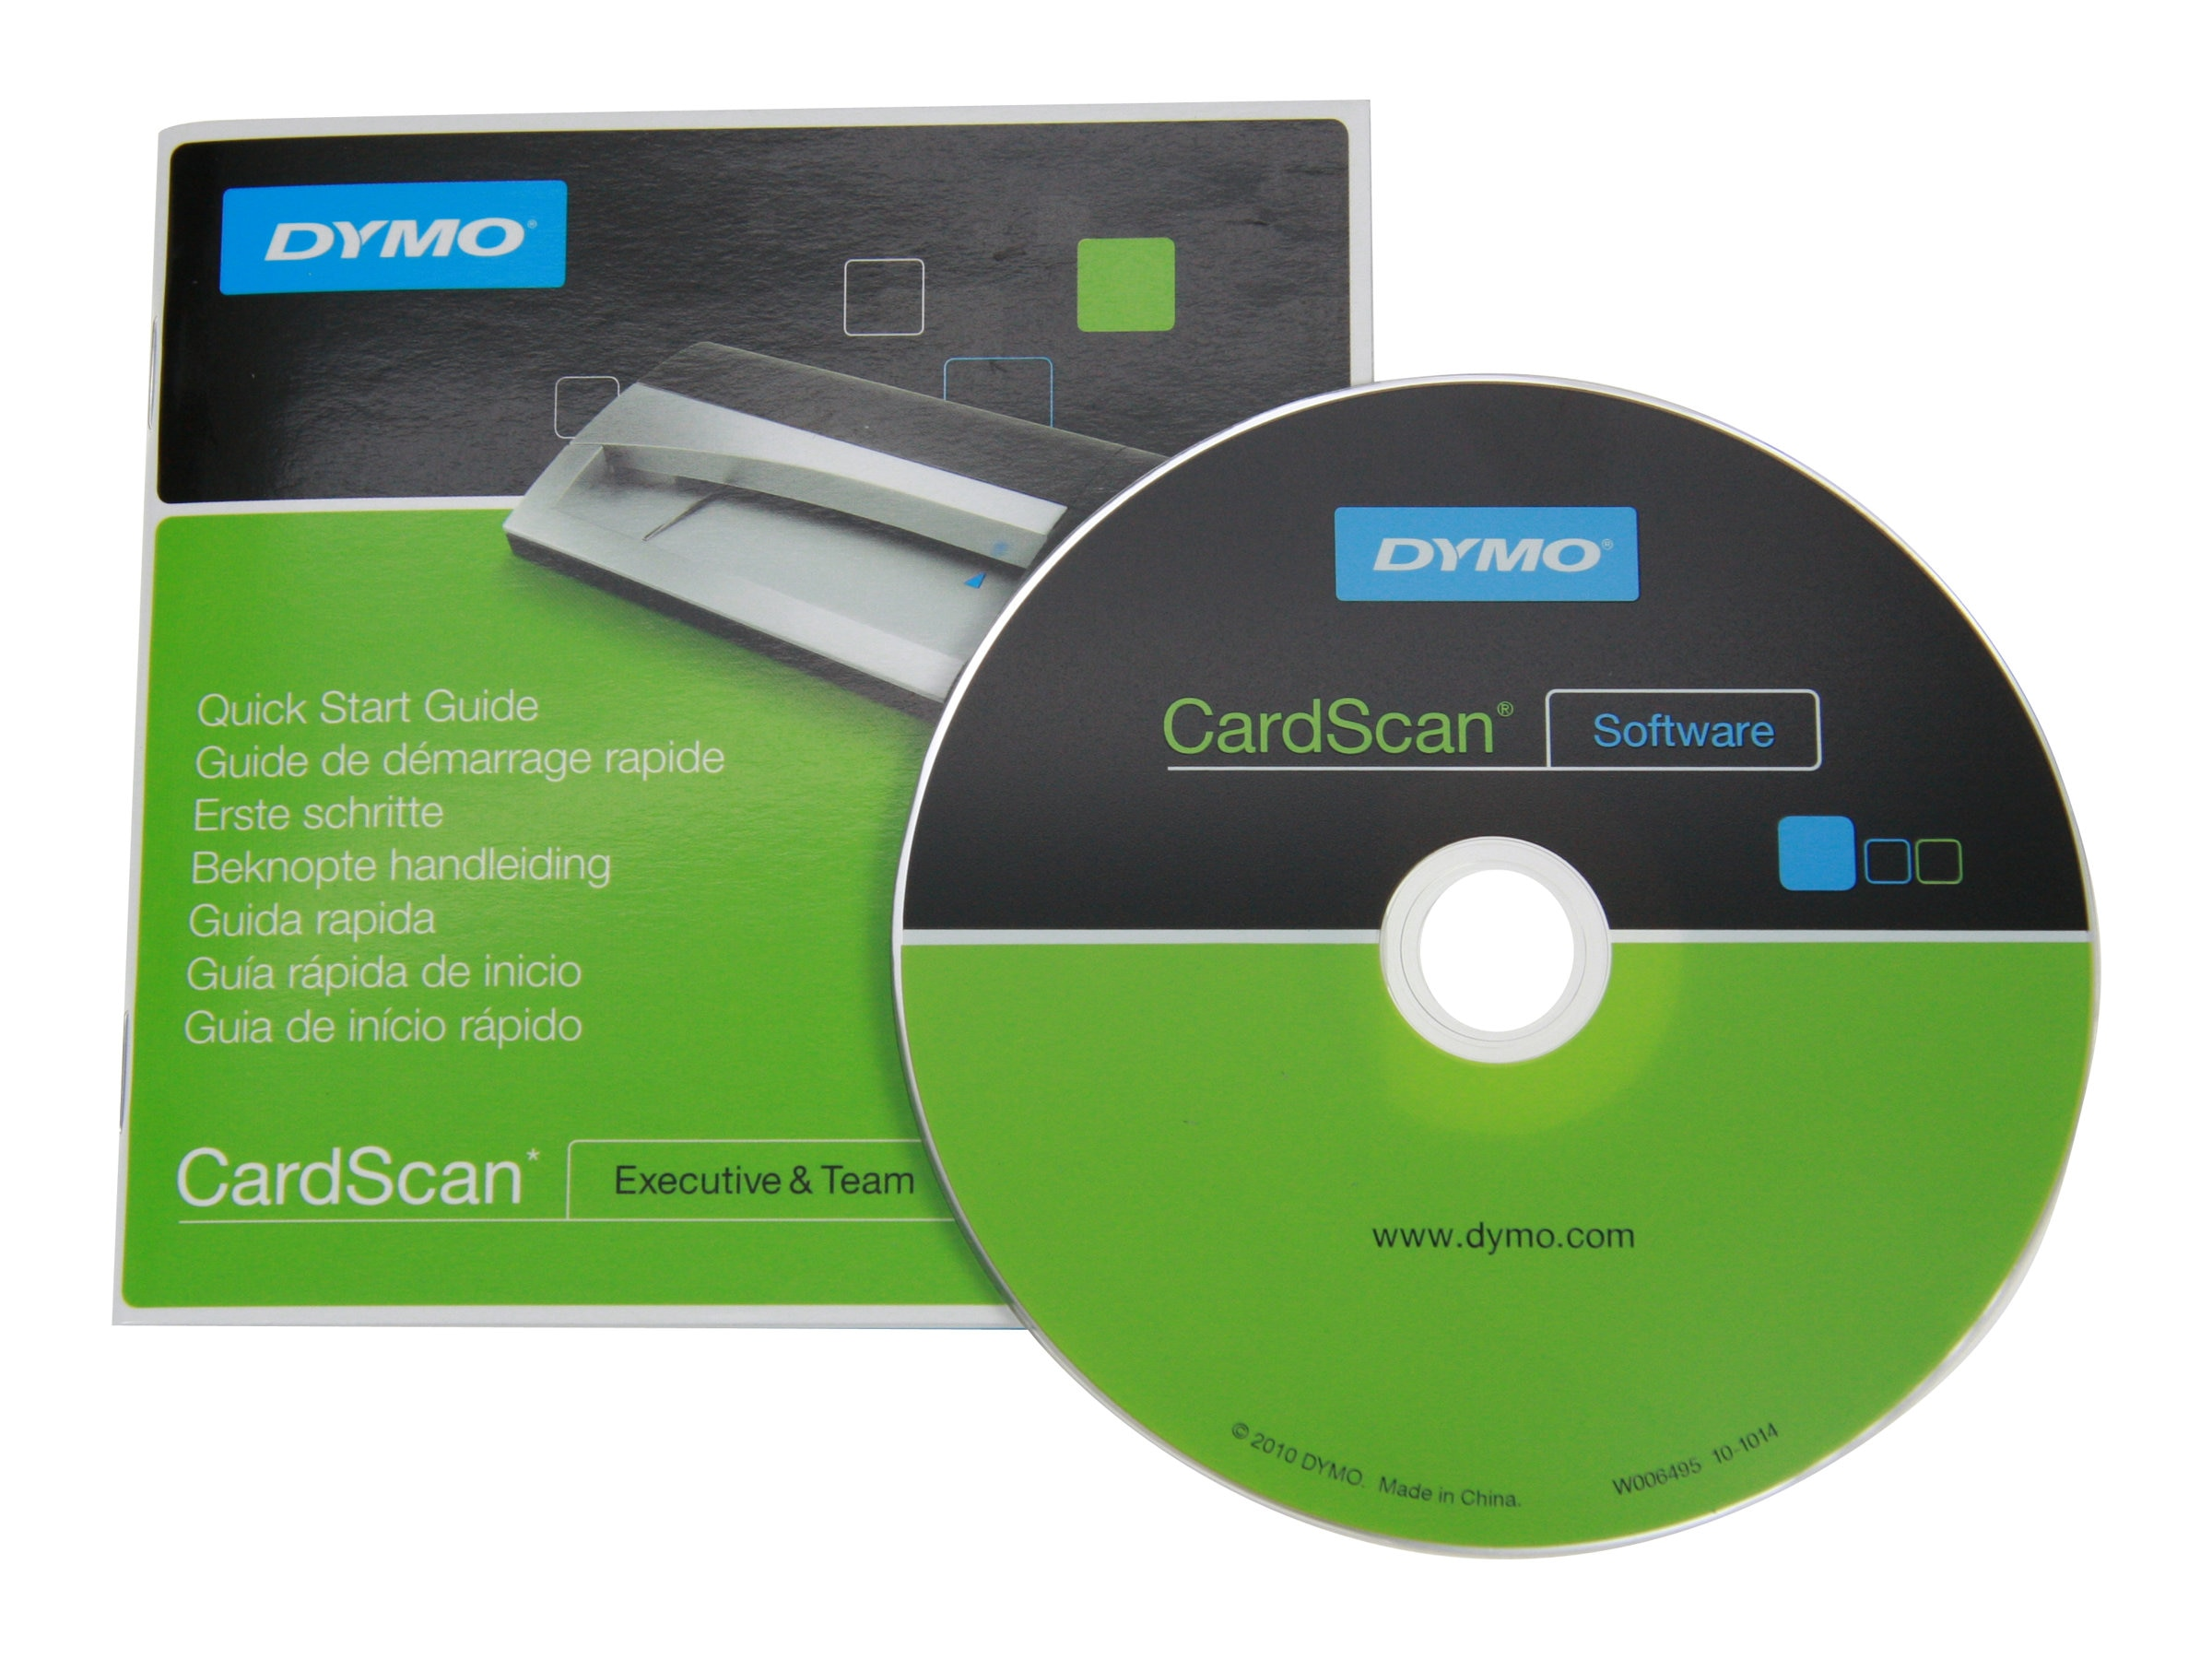 DYMO CardScan Team 9.0 5-user SW CD-ROM